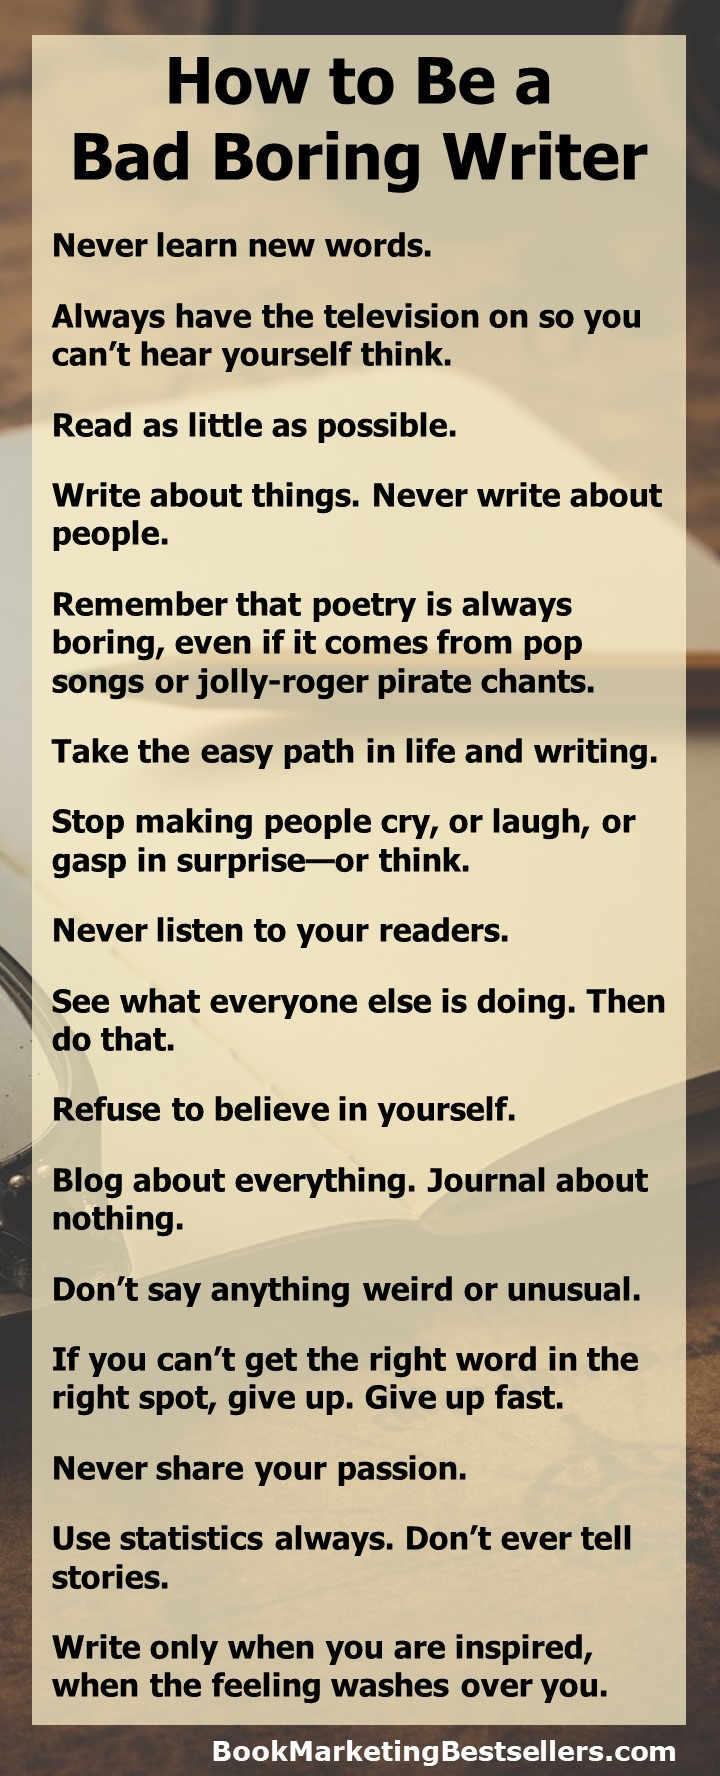 How to Be a Bad Boring Writer - If you'd like to be a bad writer, a boring writer, follow these 16 simple rules: Never learn new words. Always have the television on so you can't hear yourself think. Read as little as possible....